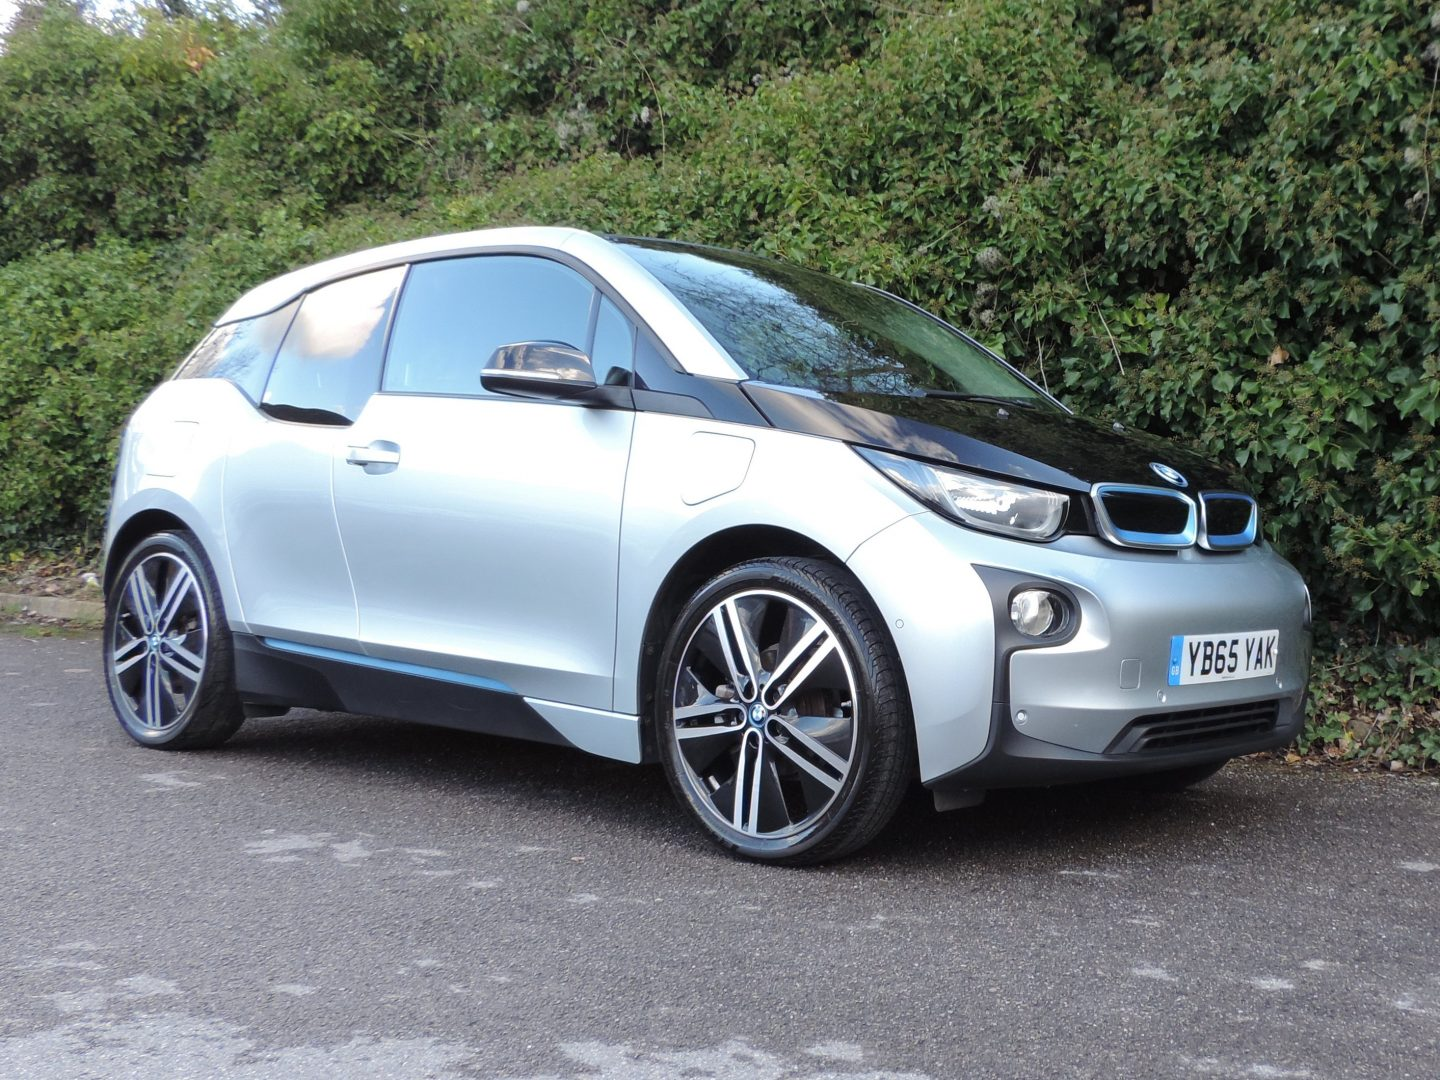 BMW i3 22kWh / 60Ah REX (2015) Ionic Silver / Suite Leather